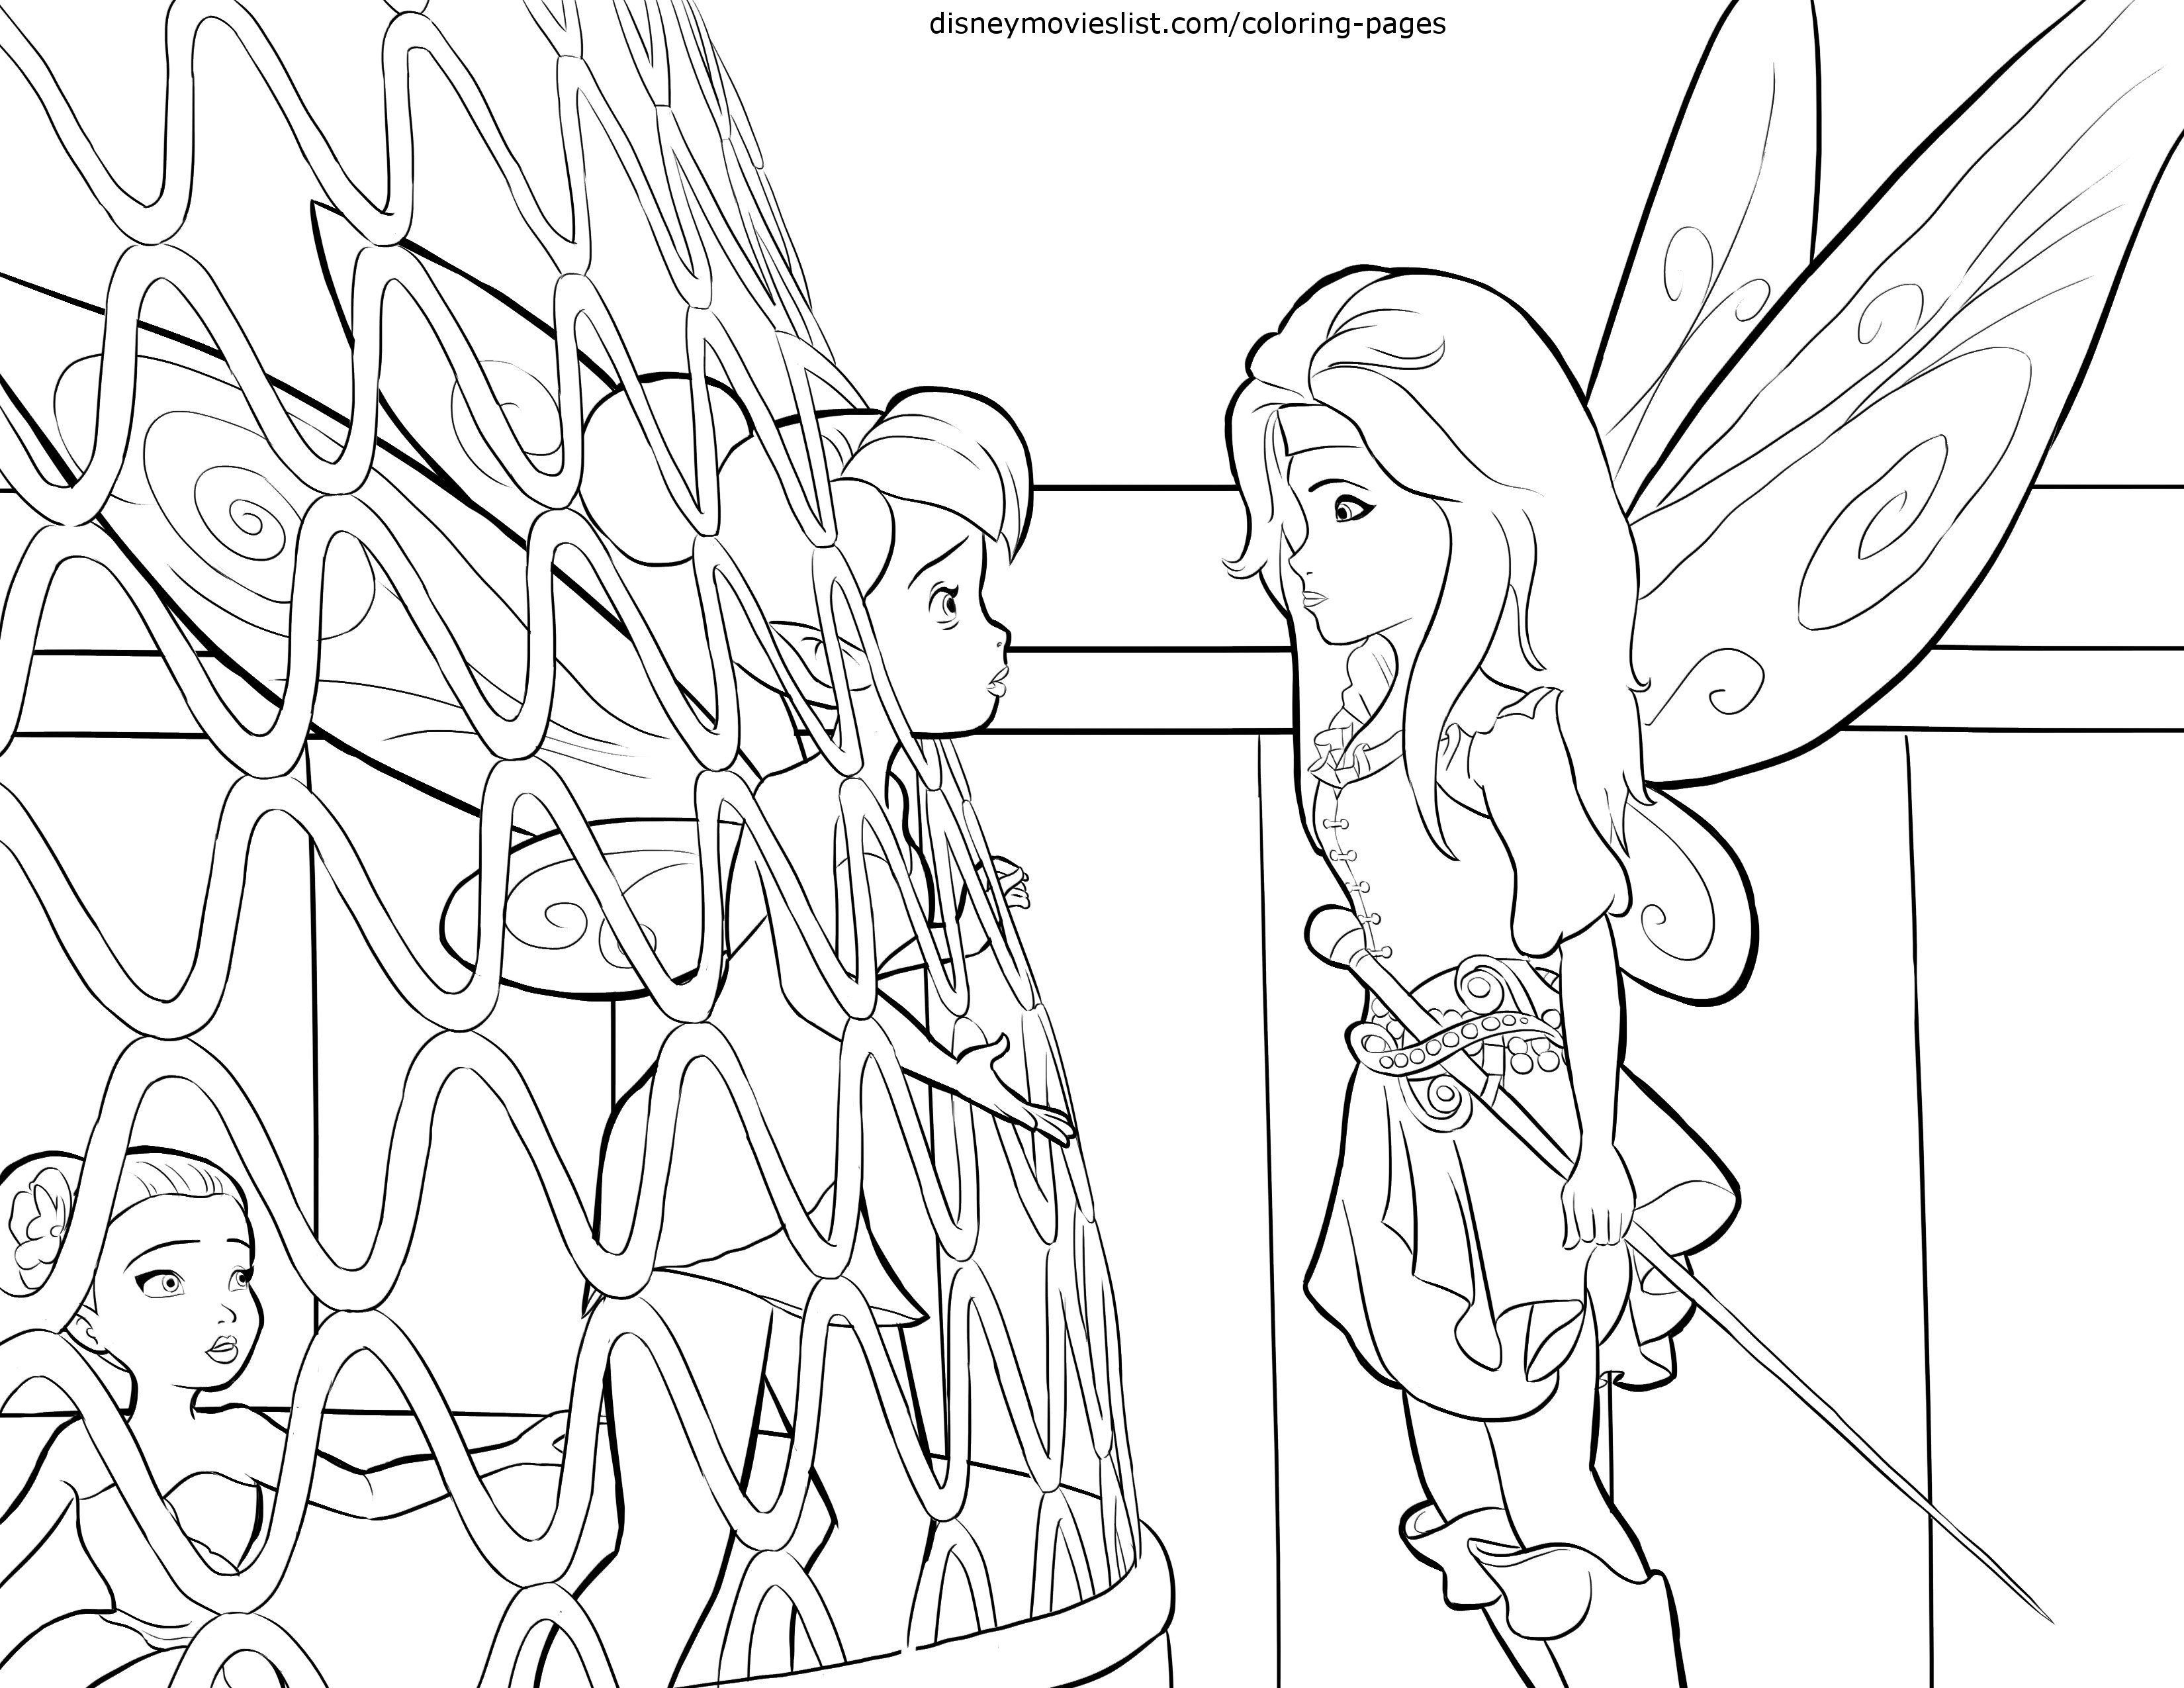 Disney Pirate Fairy Coloring Pages